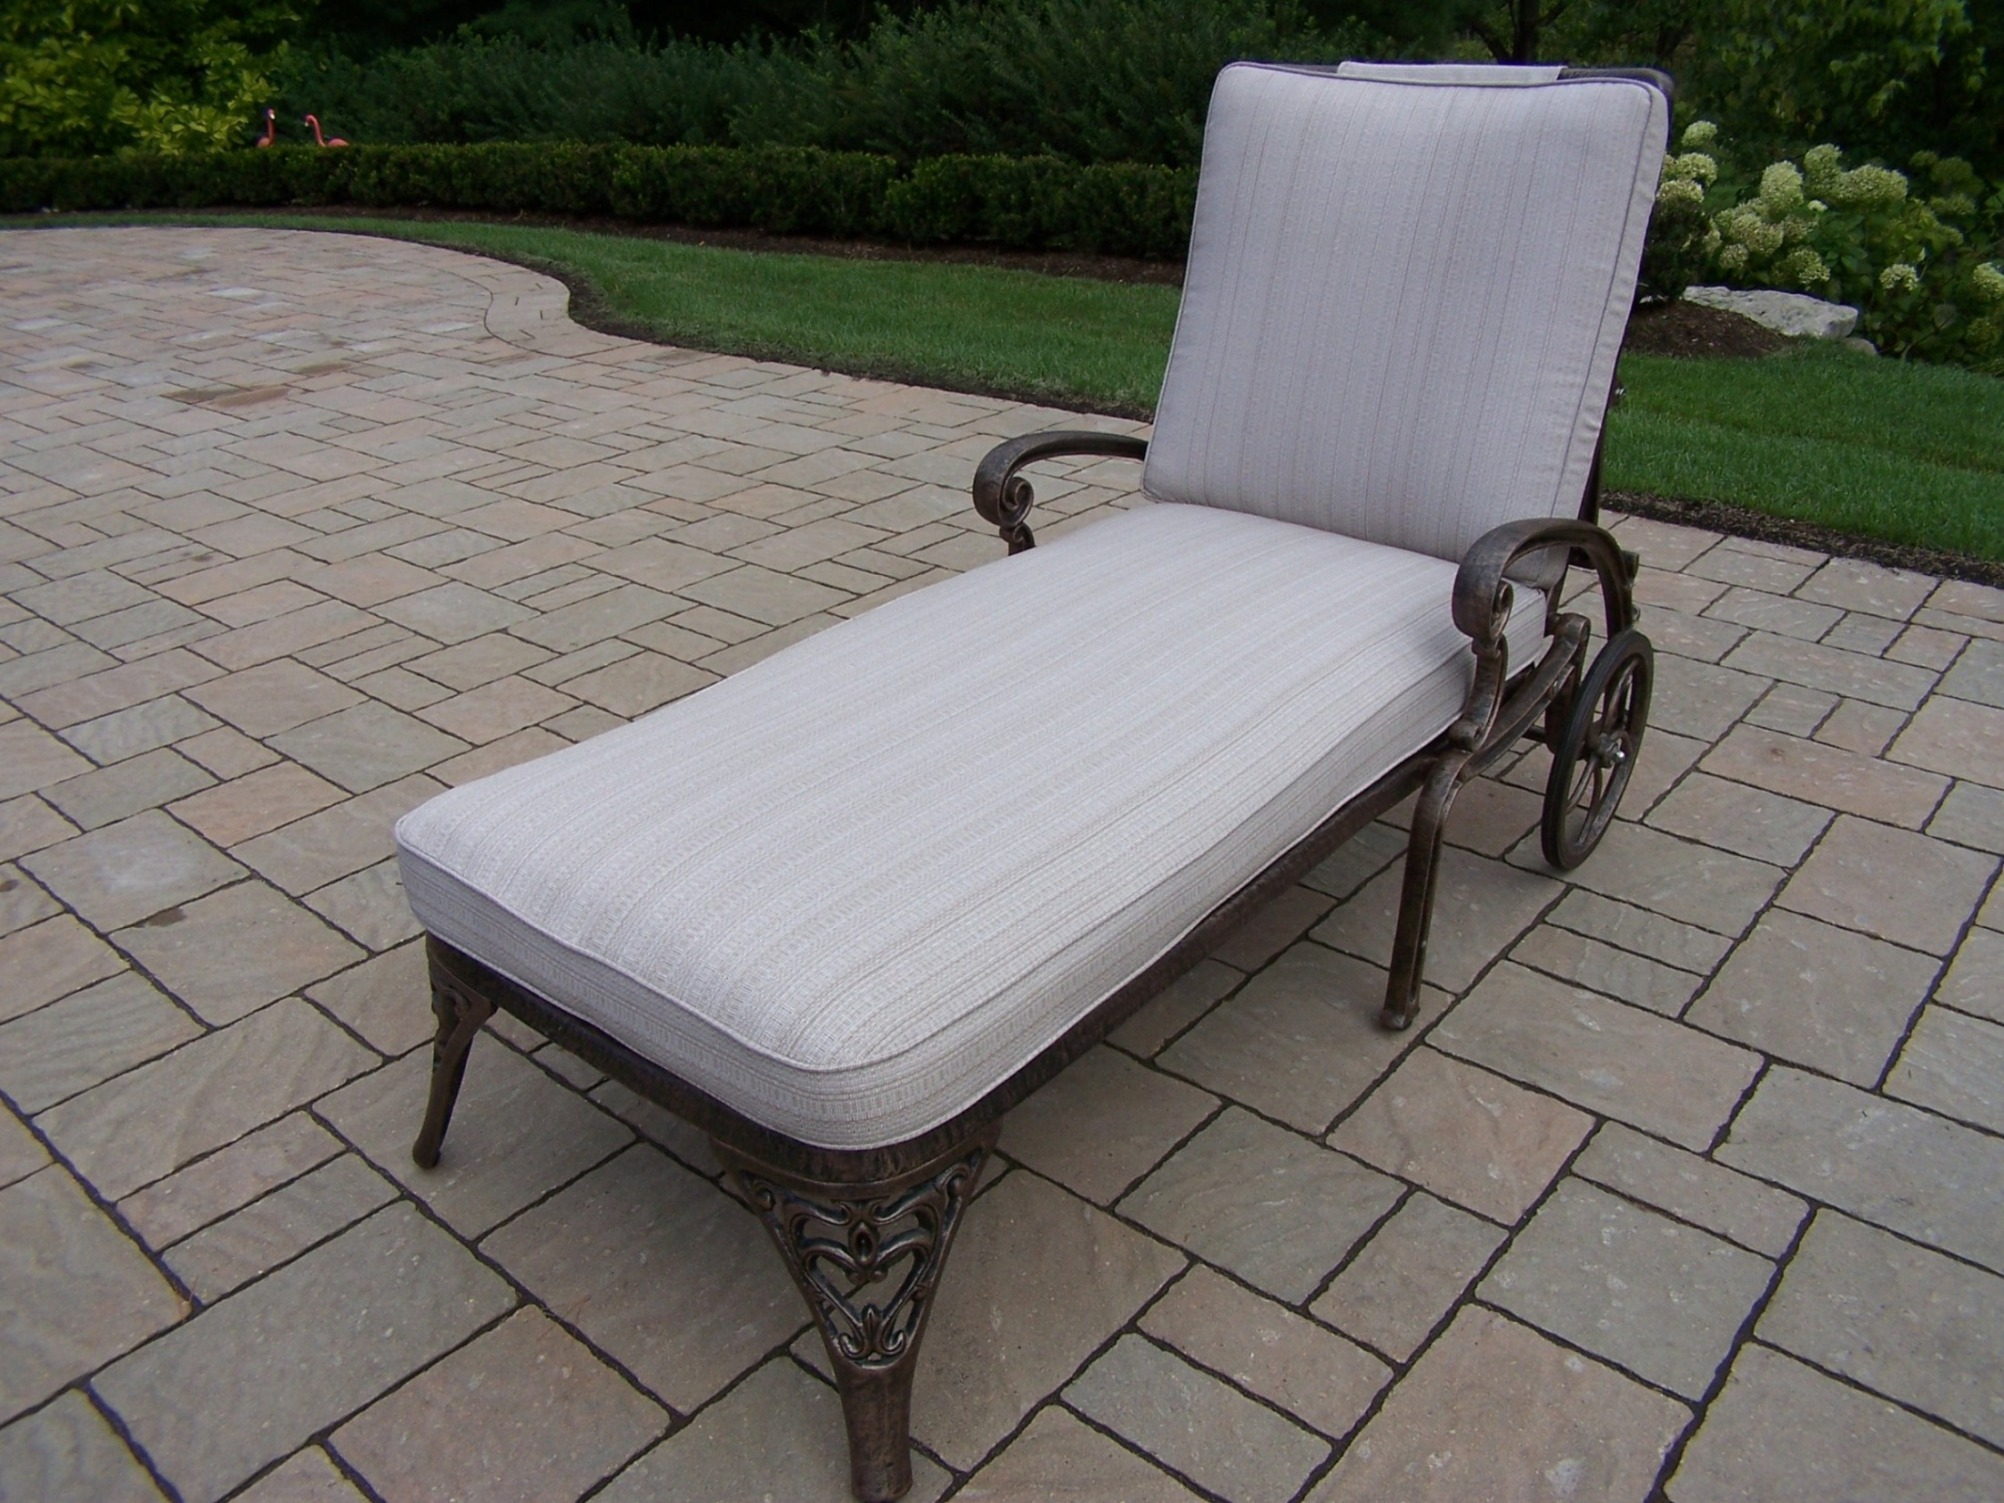 Oakland Living Cast Aluminum Chaise Lounge on Wheels with